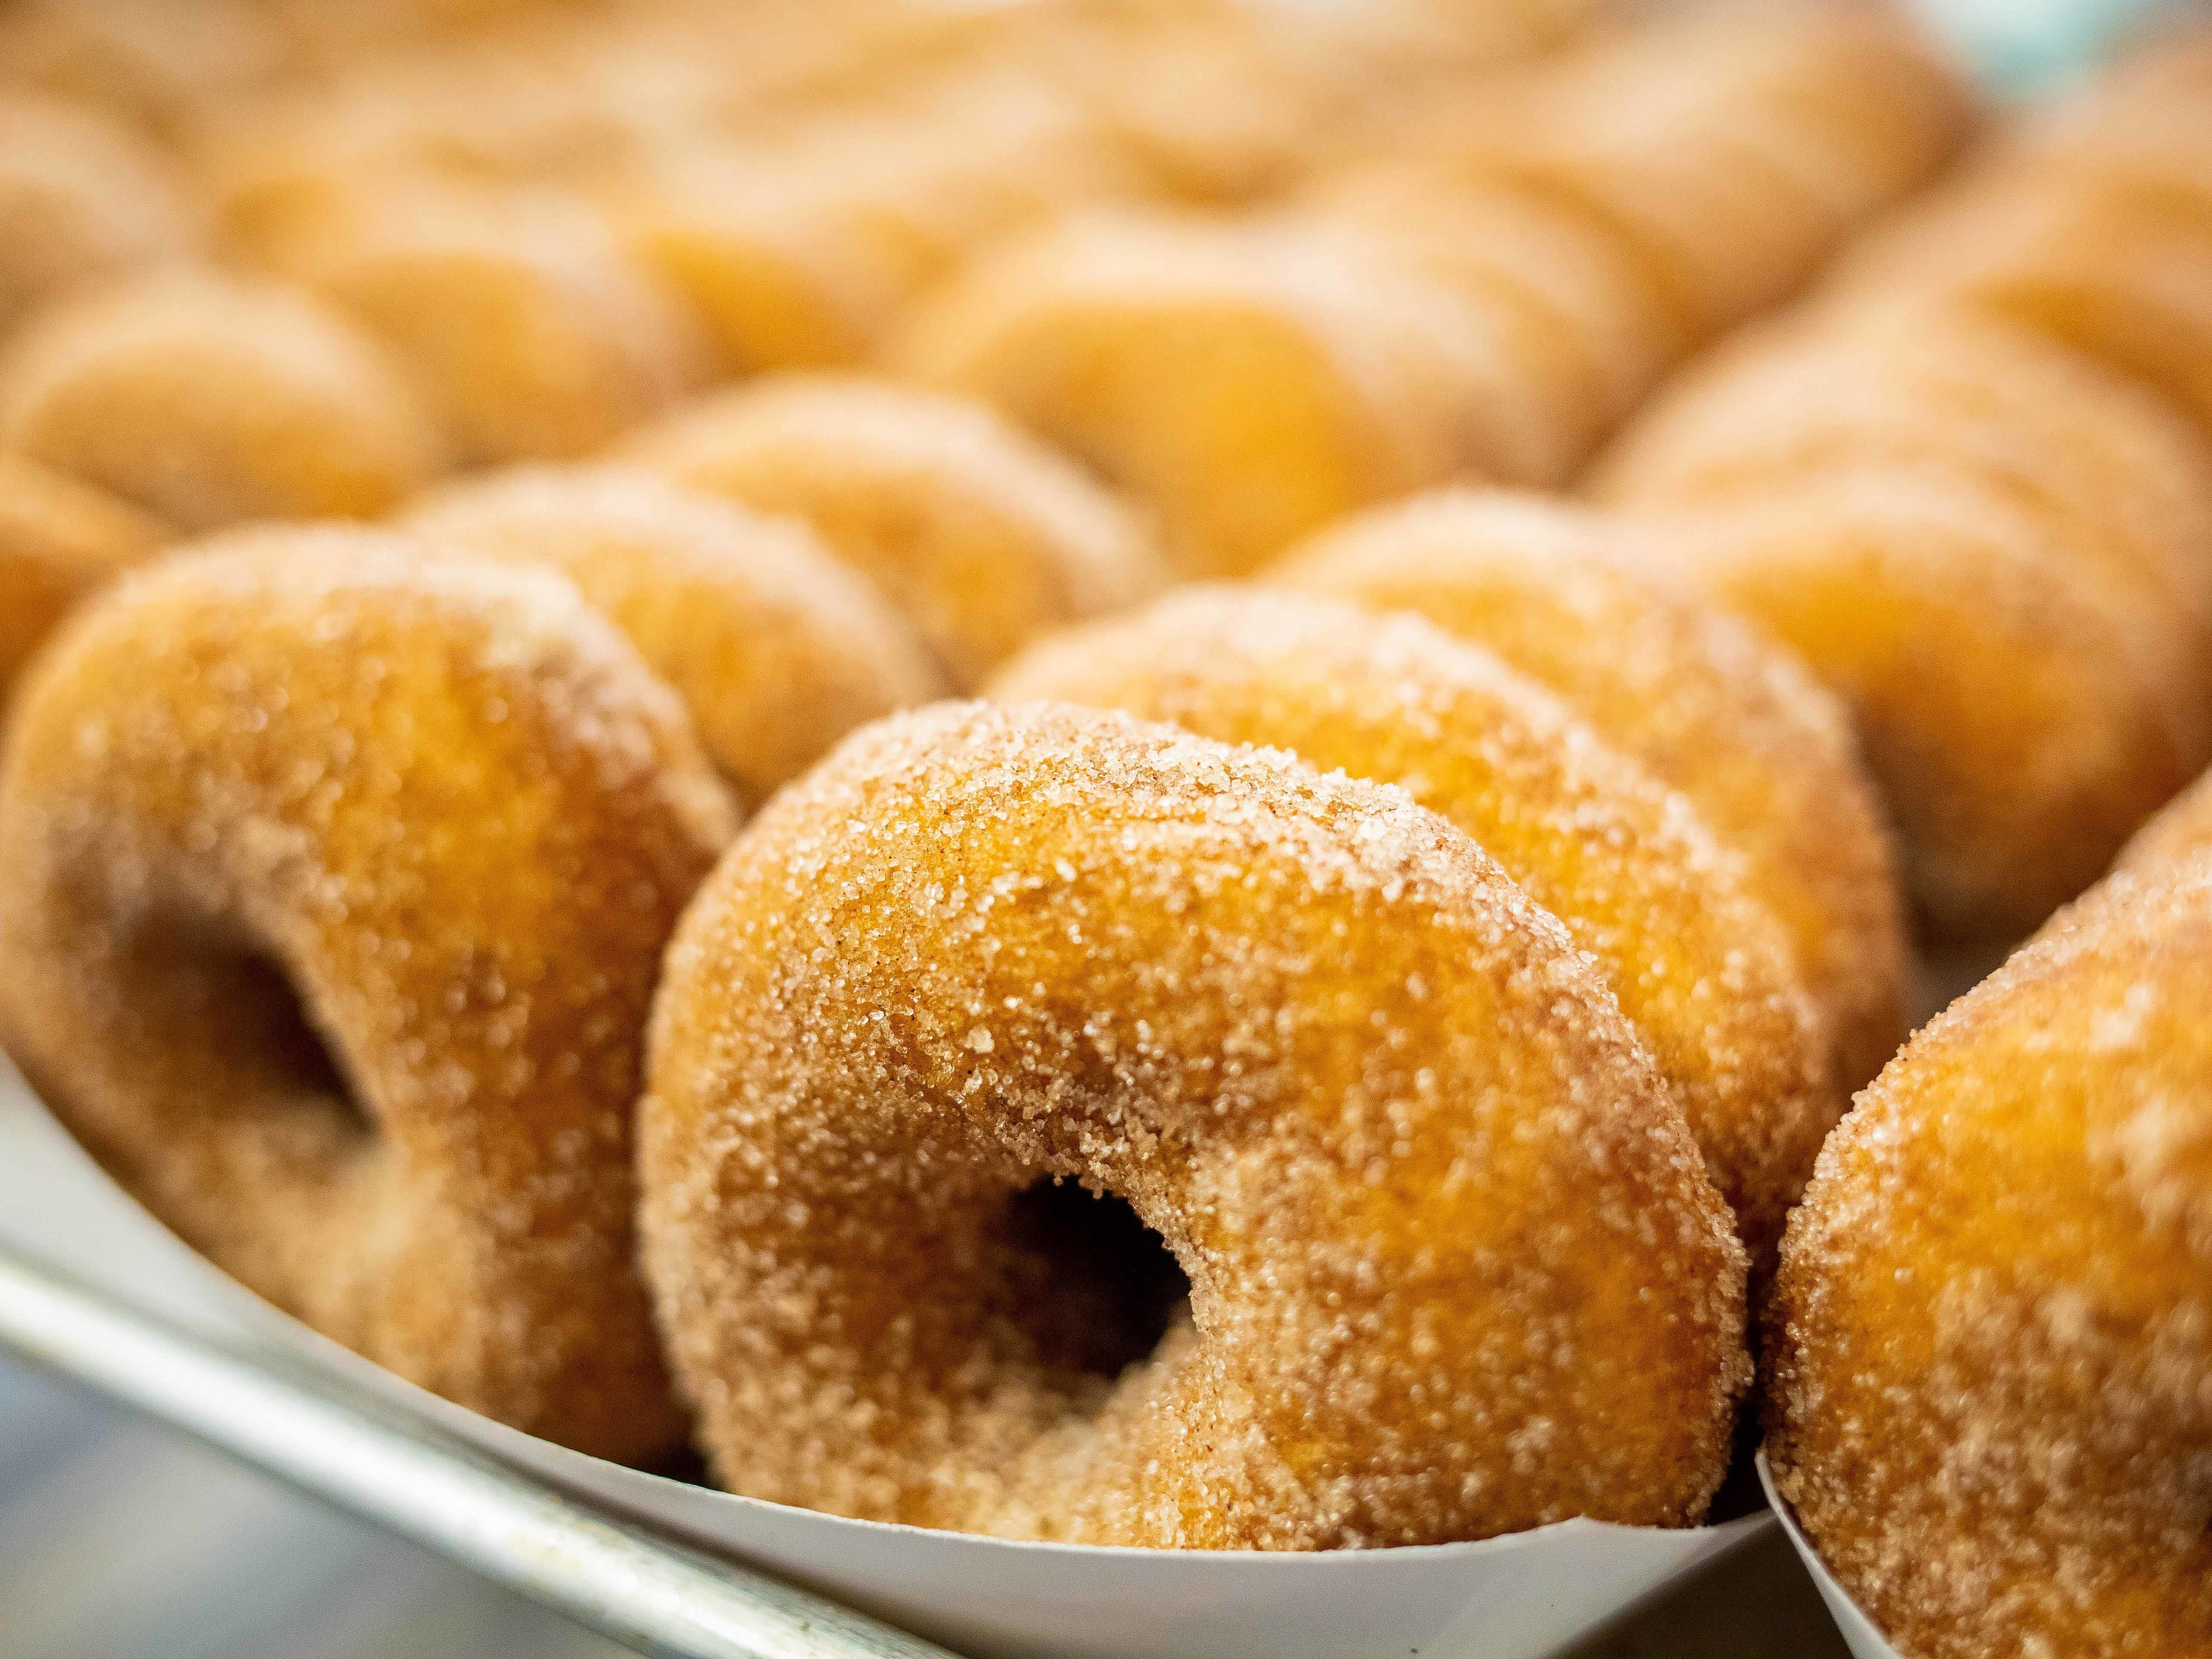 The tastiest apple cider donuts near me in NYC